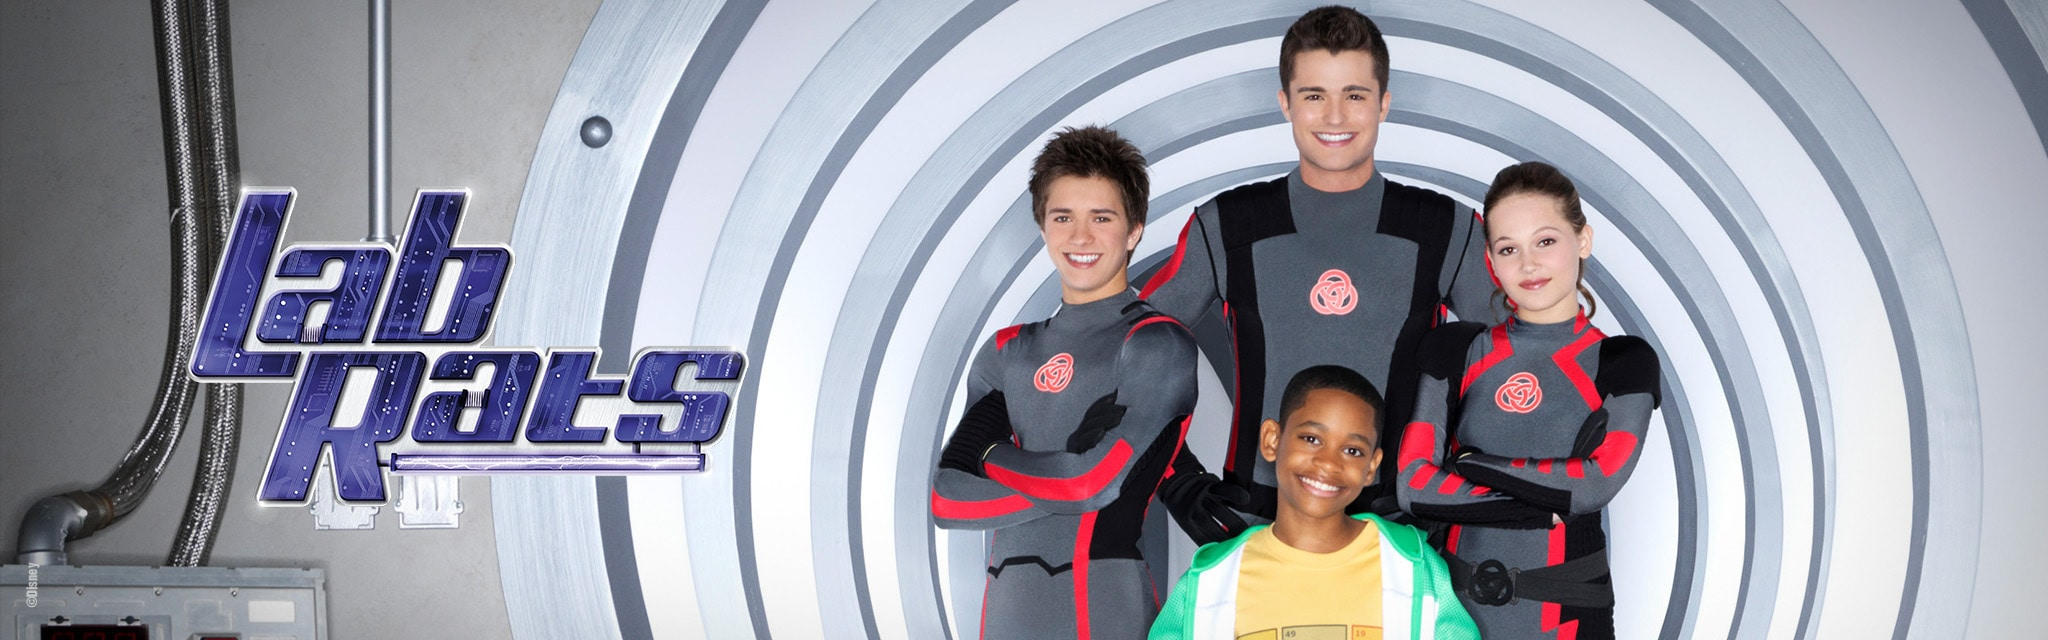 Dihd-Lab Rats-IN